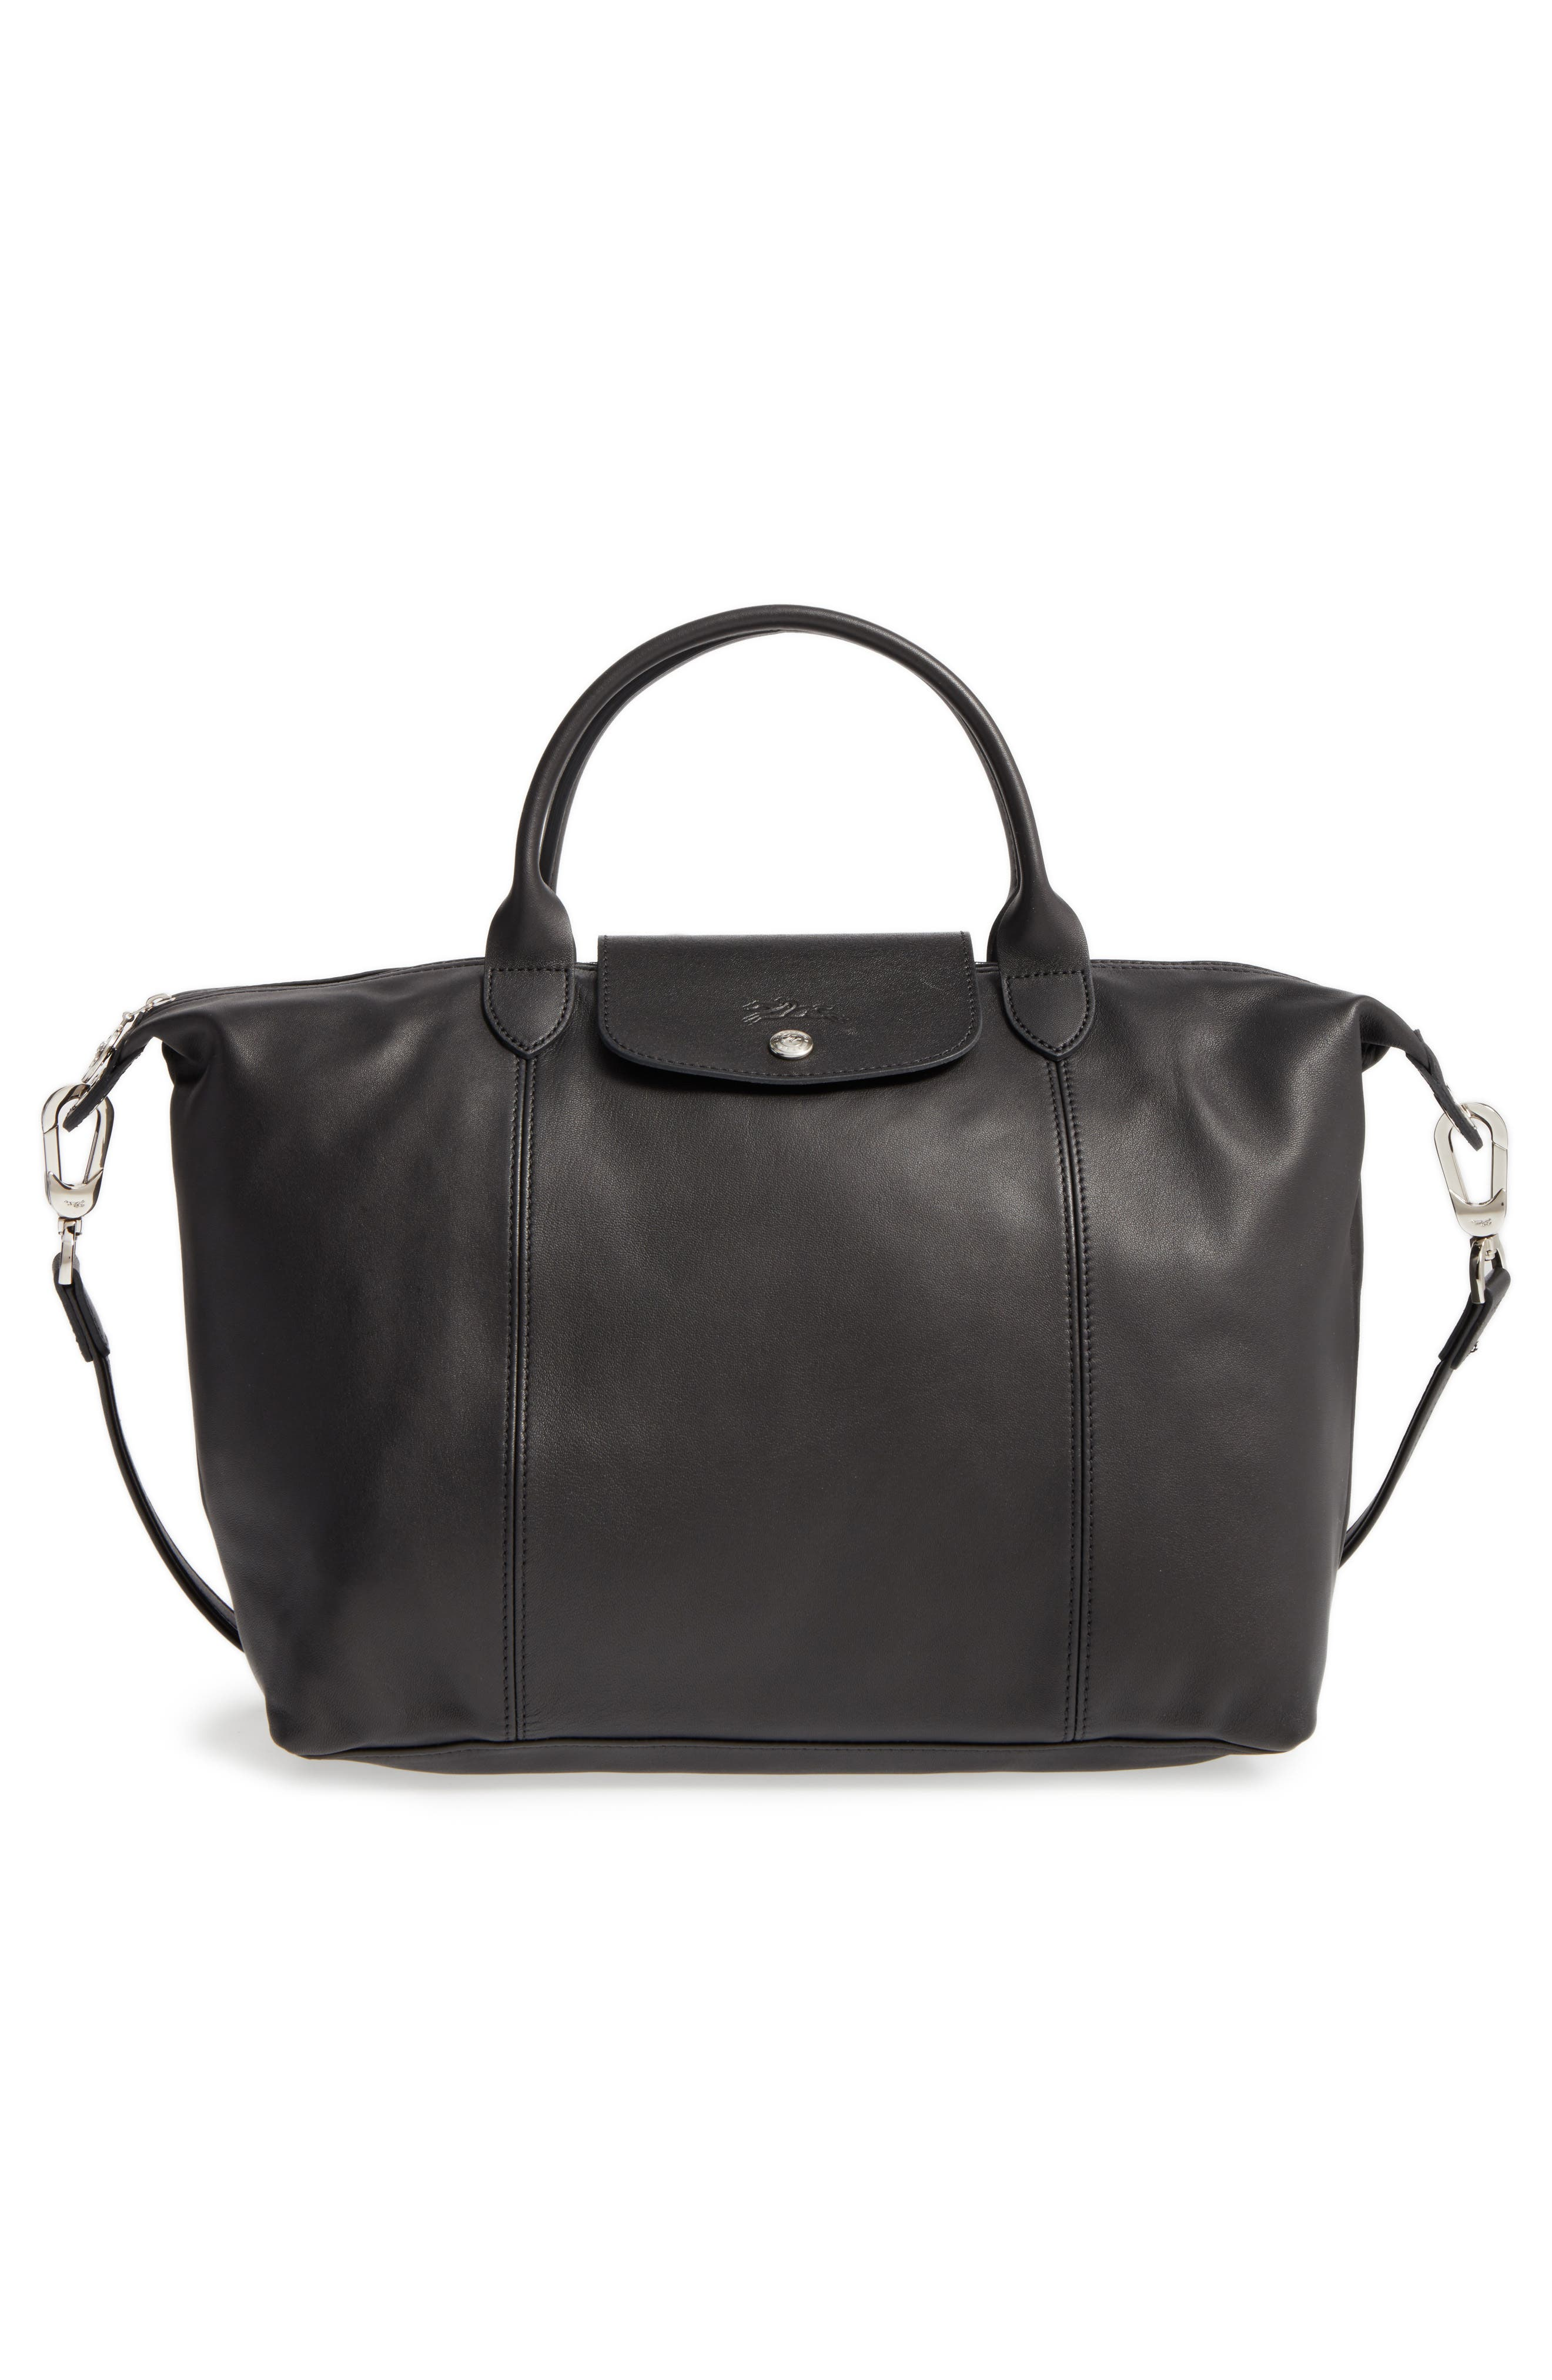 Medium 'Le Pliage Cuir' Leather Top Handle Tote,                             Alternate thumbnail 6, color,                             BLACK